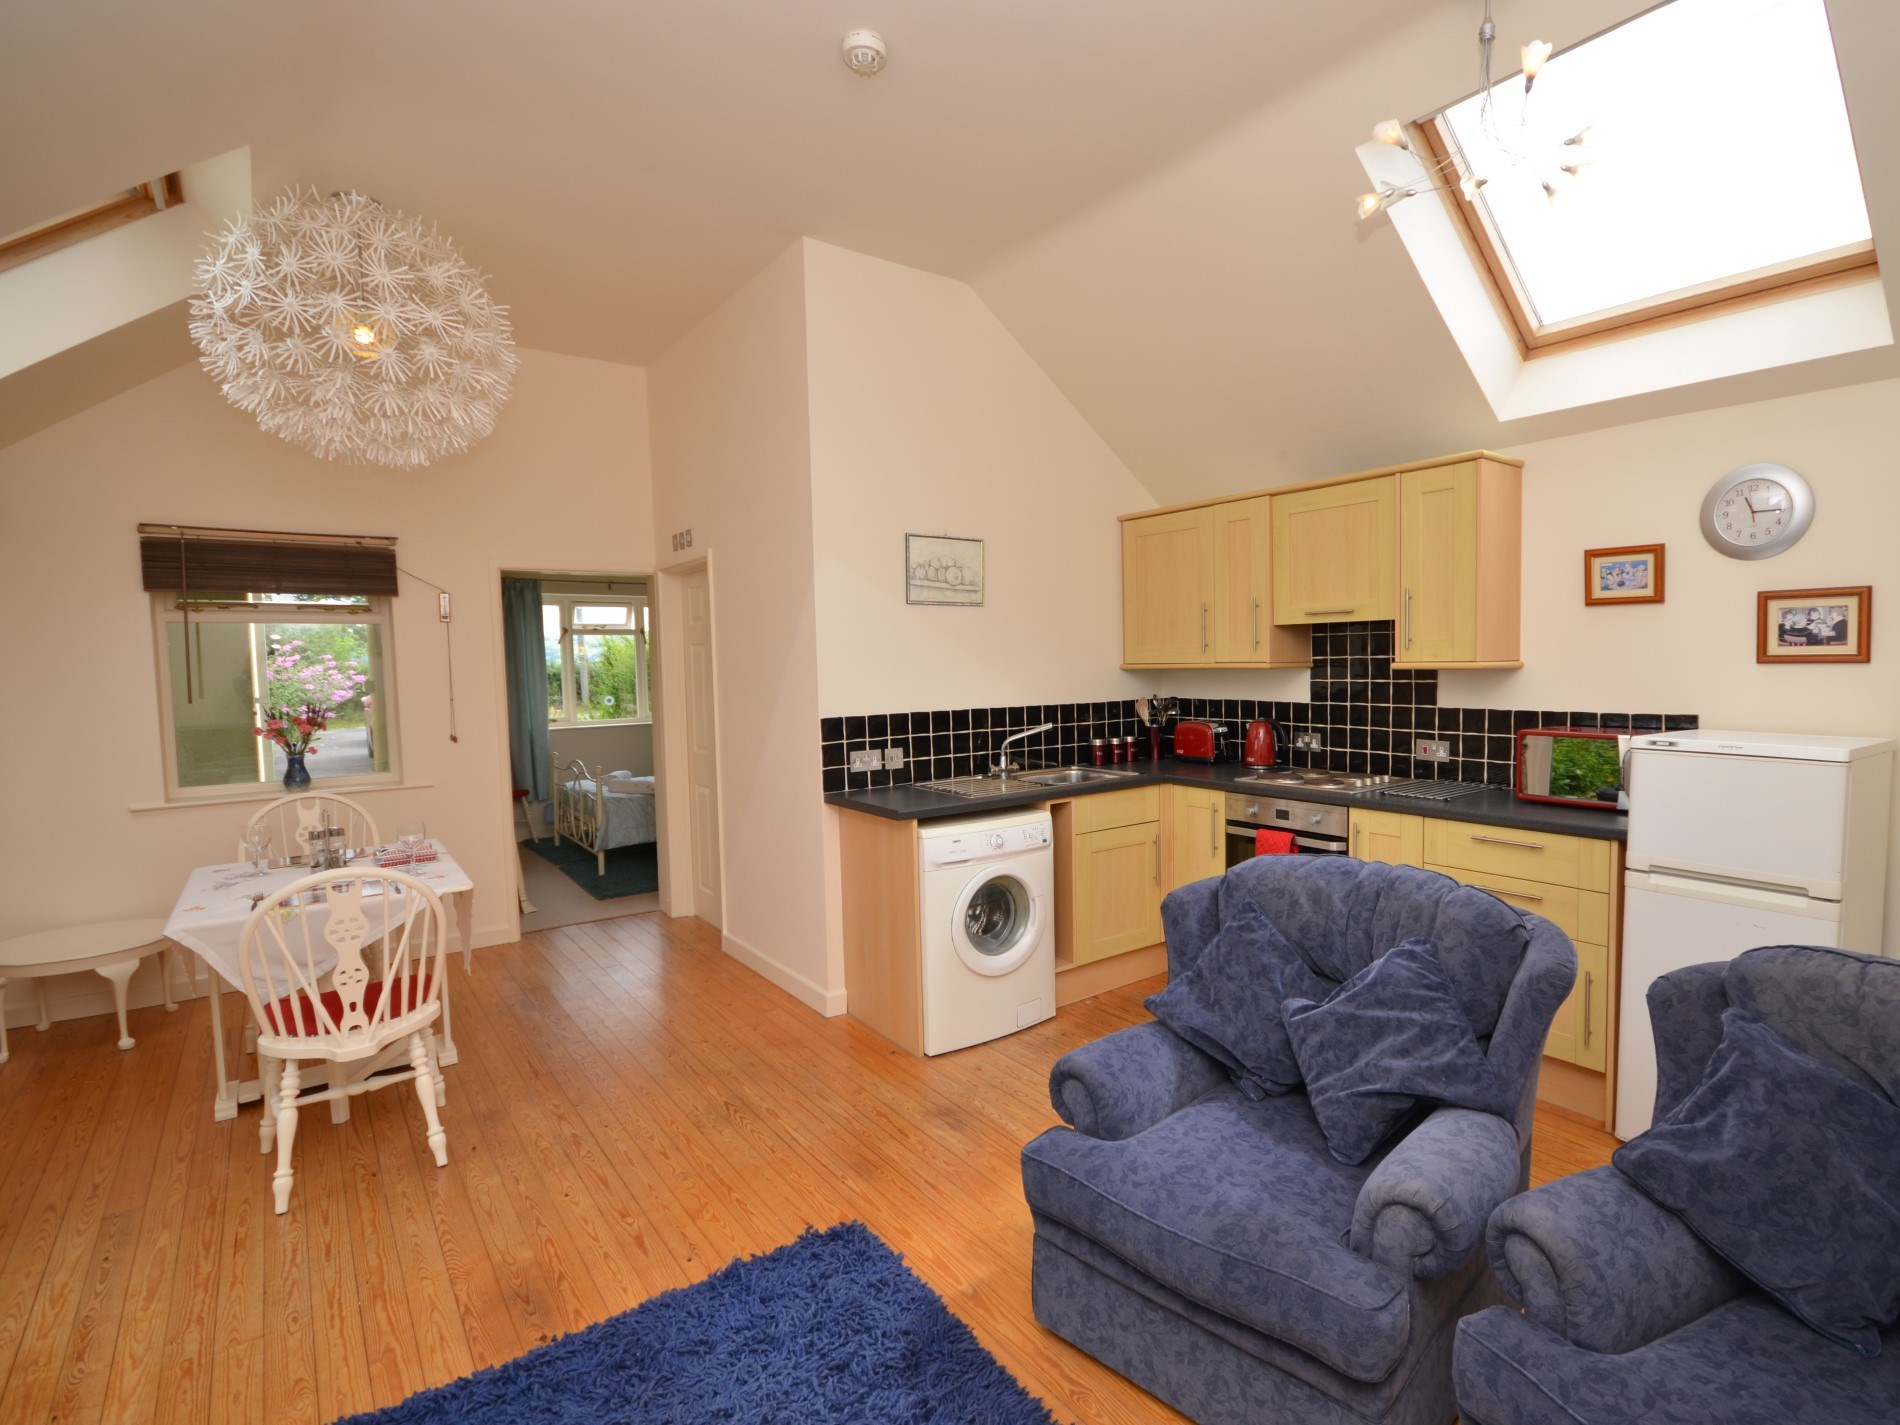 1 Bedroom Cottage in Wedmore, Dorset and Somerset